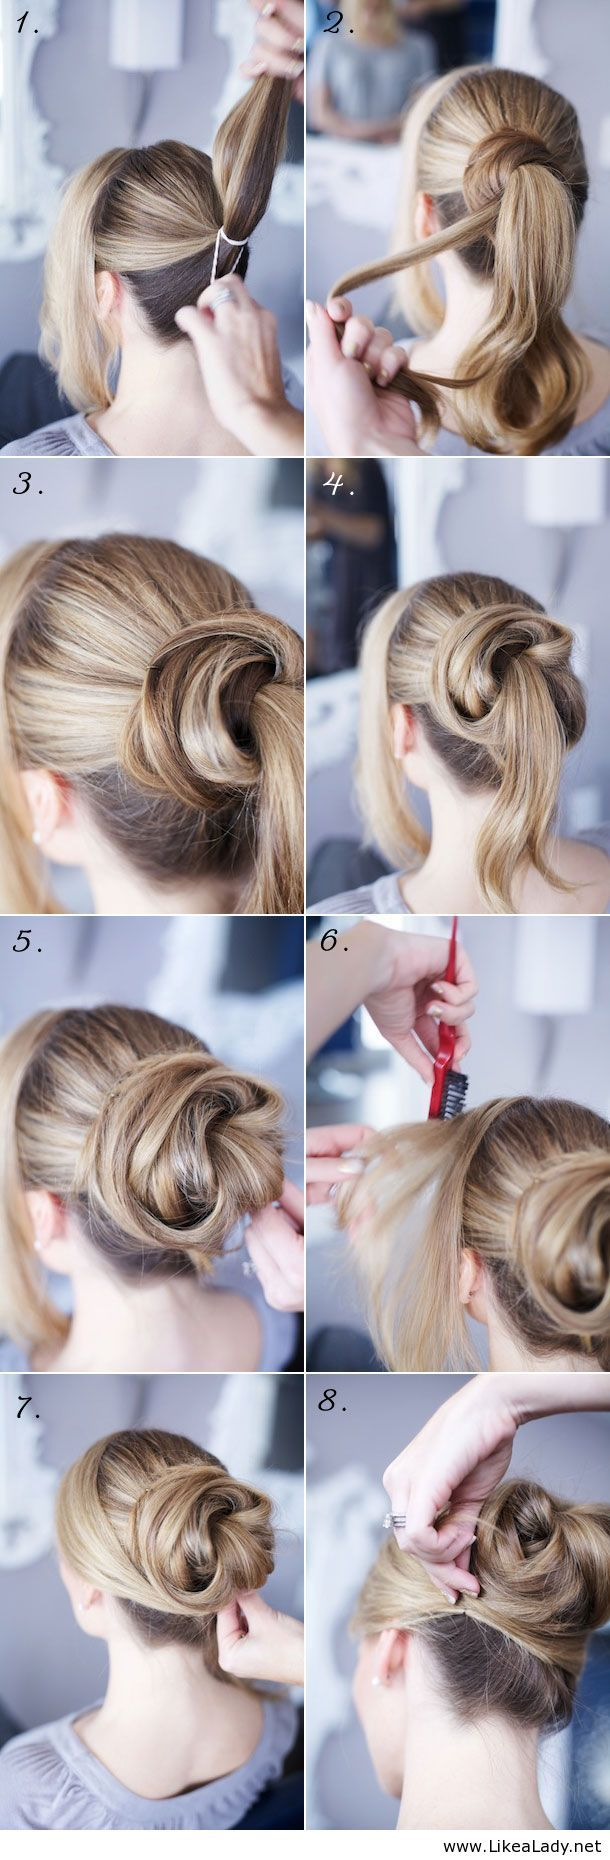 Easy Tutorials to Make Wedding Hair My hair Twists and At